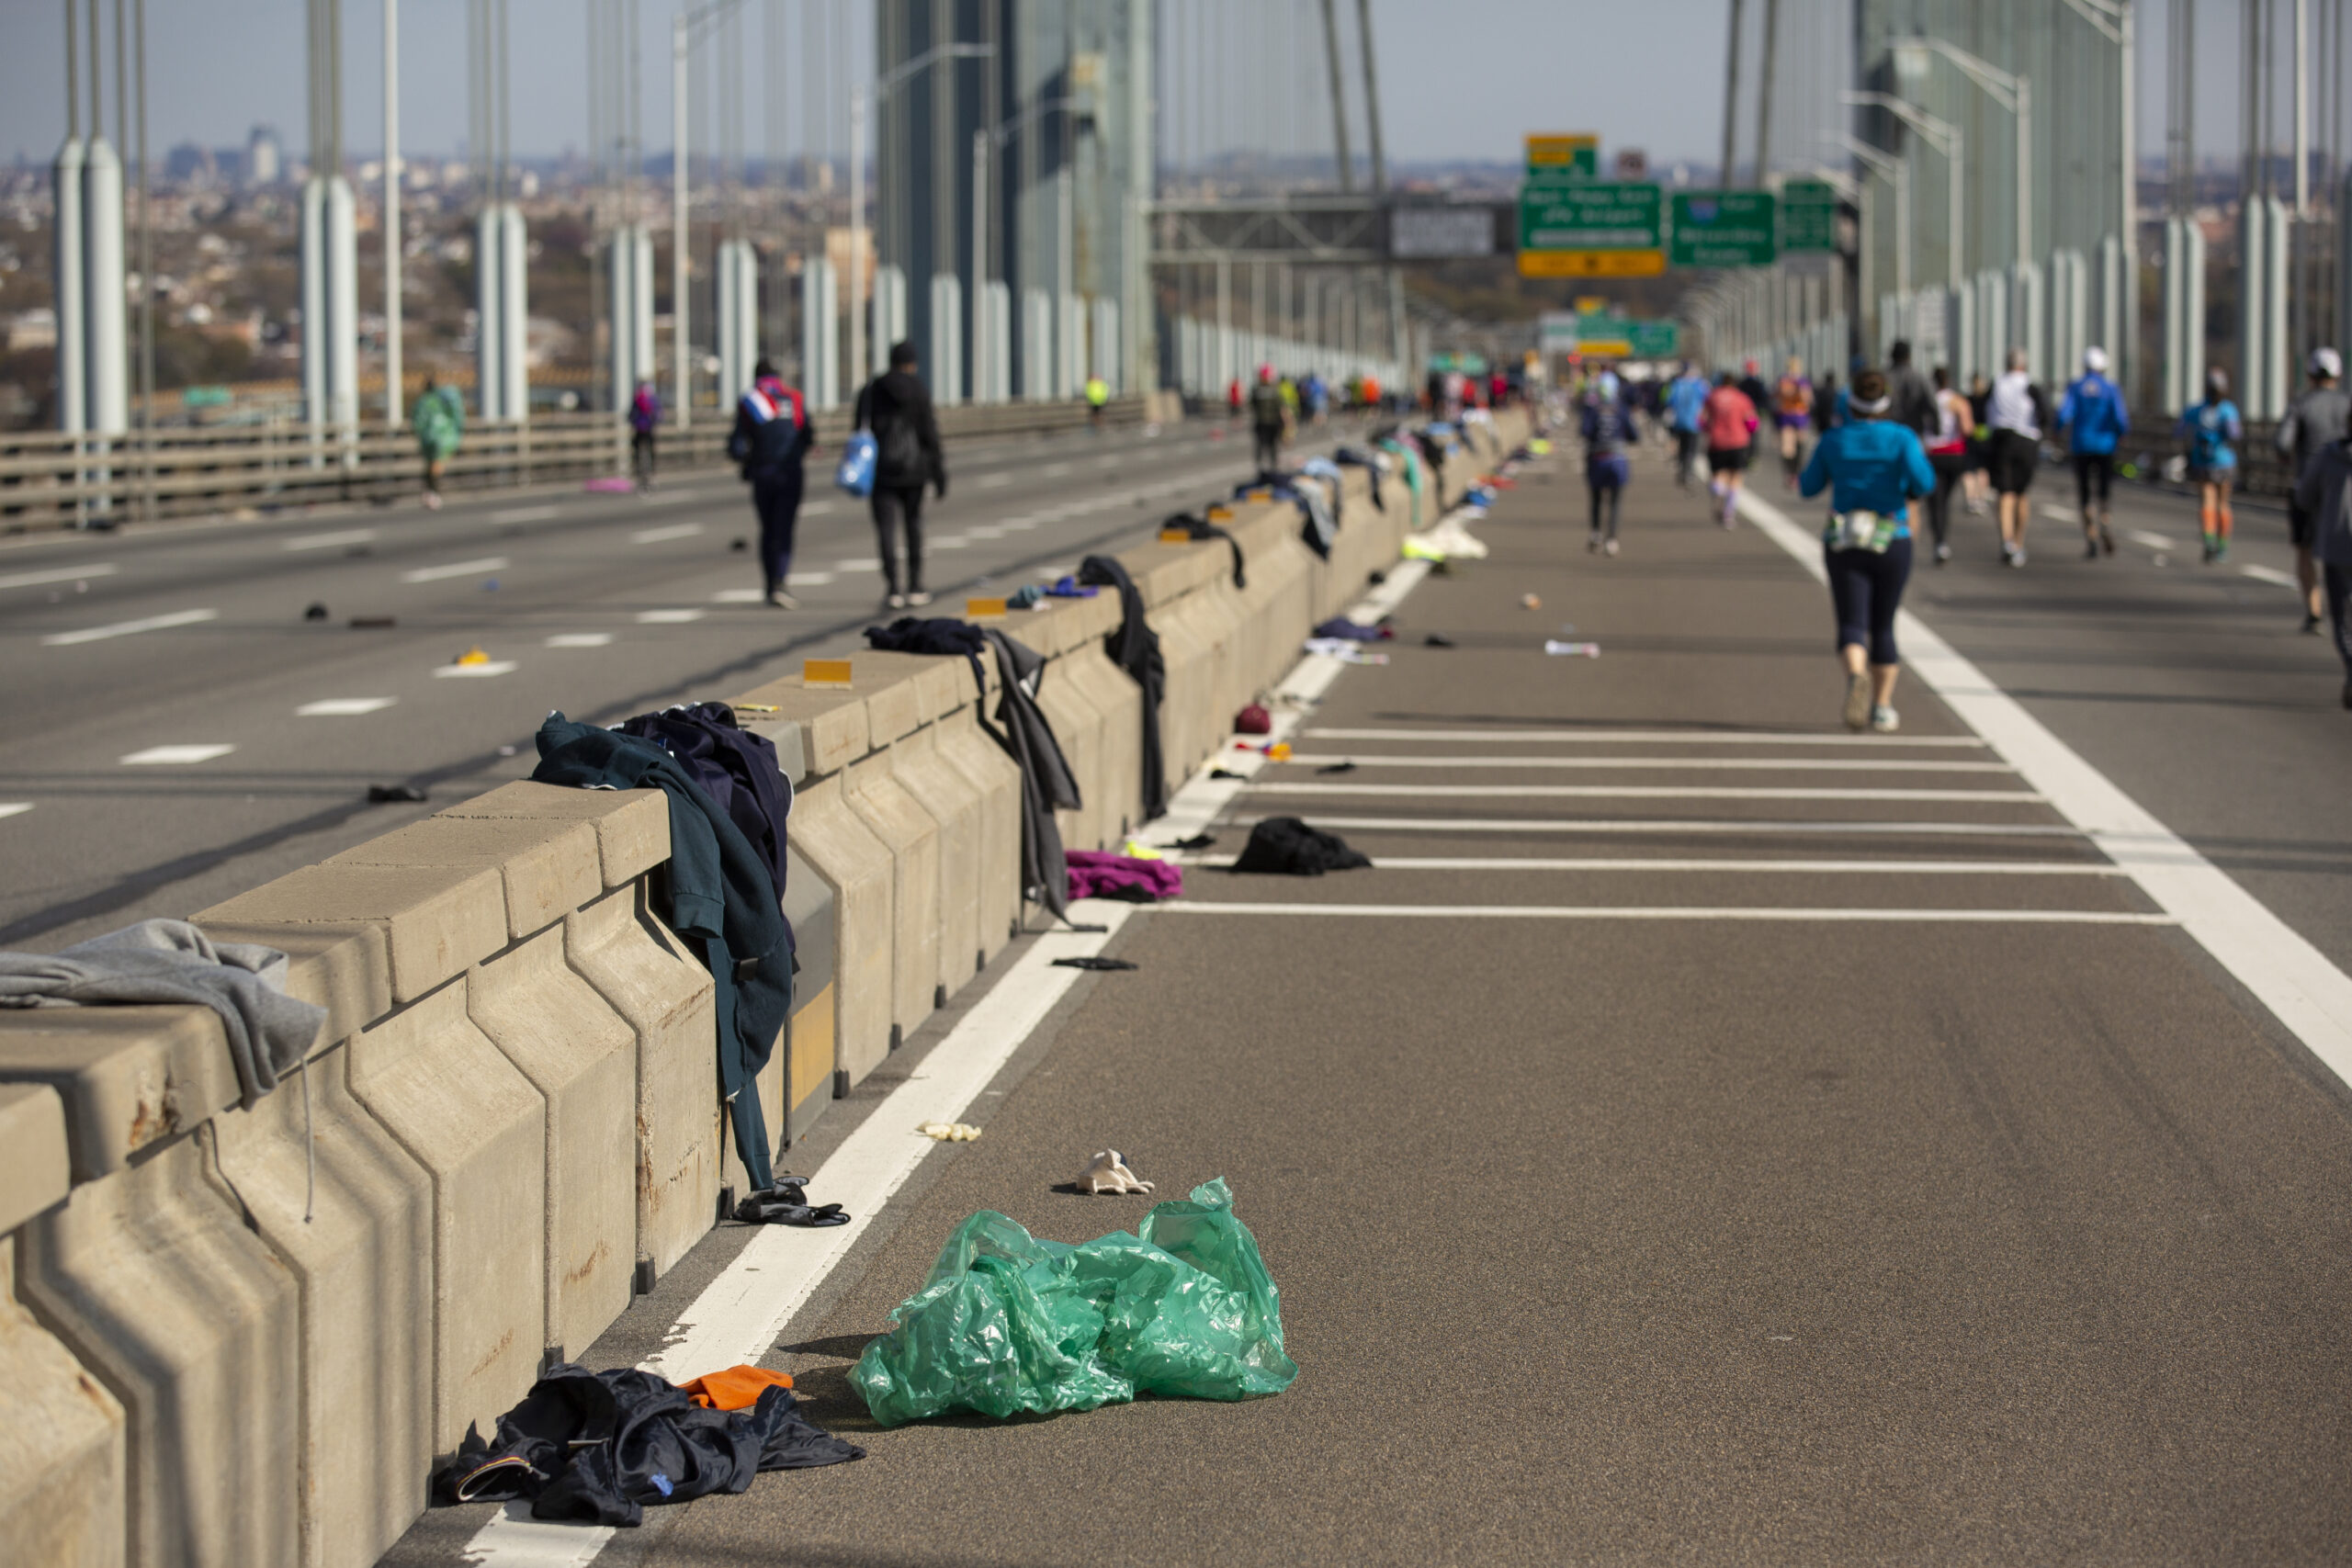 Ben Norman shows the marathon's aftermath of discarded running clothes on the Verrazano Bridge